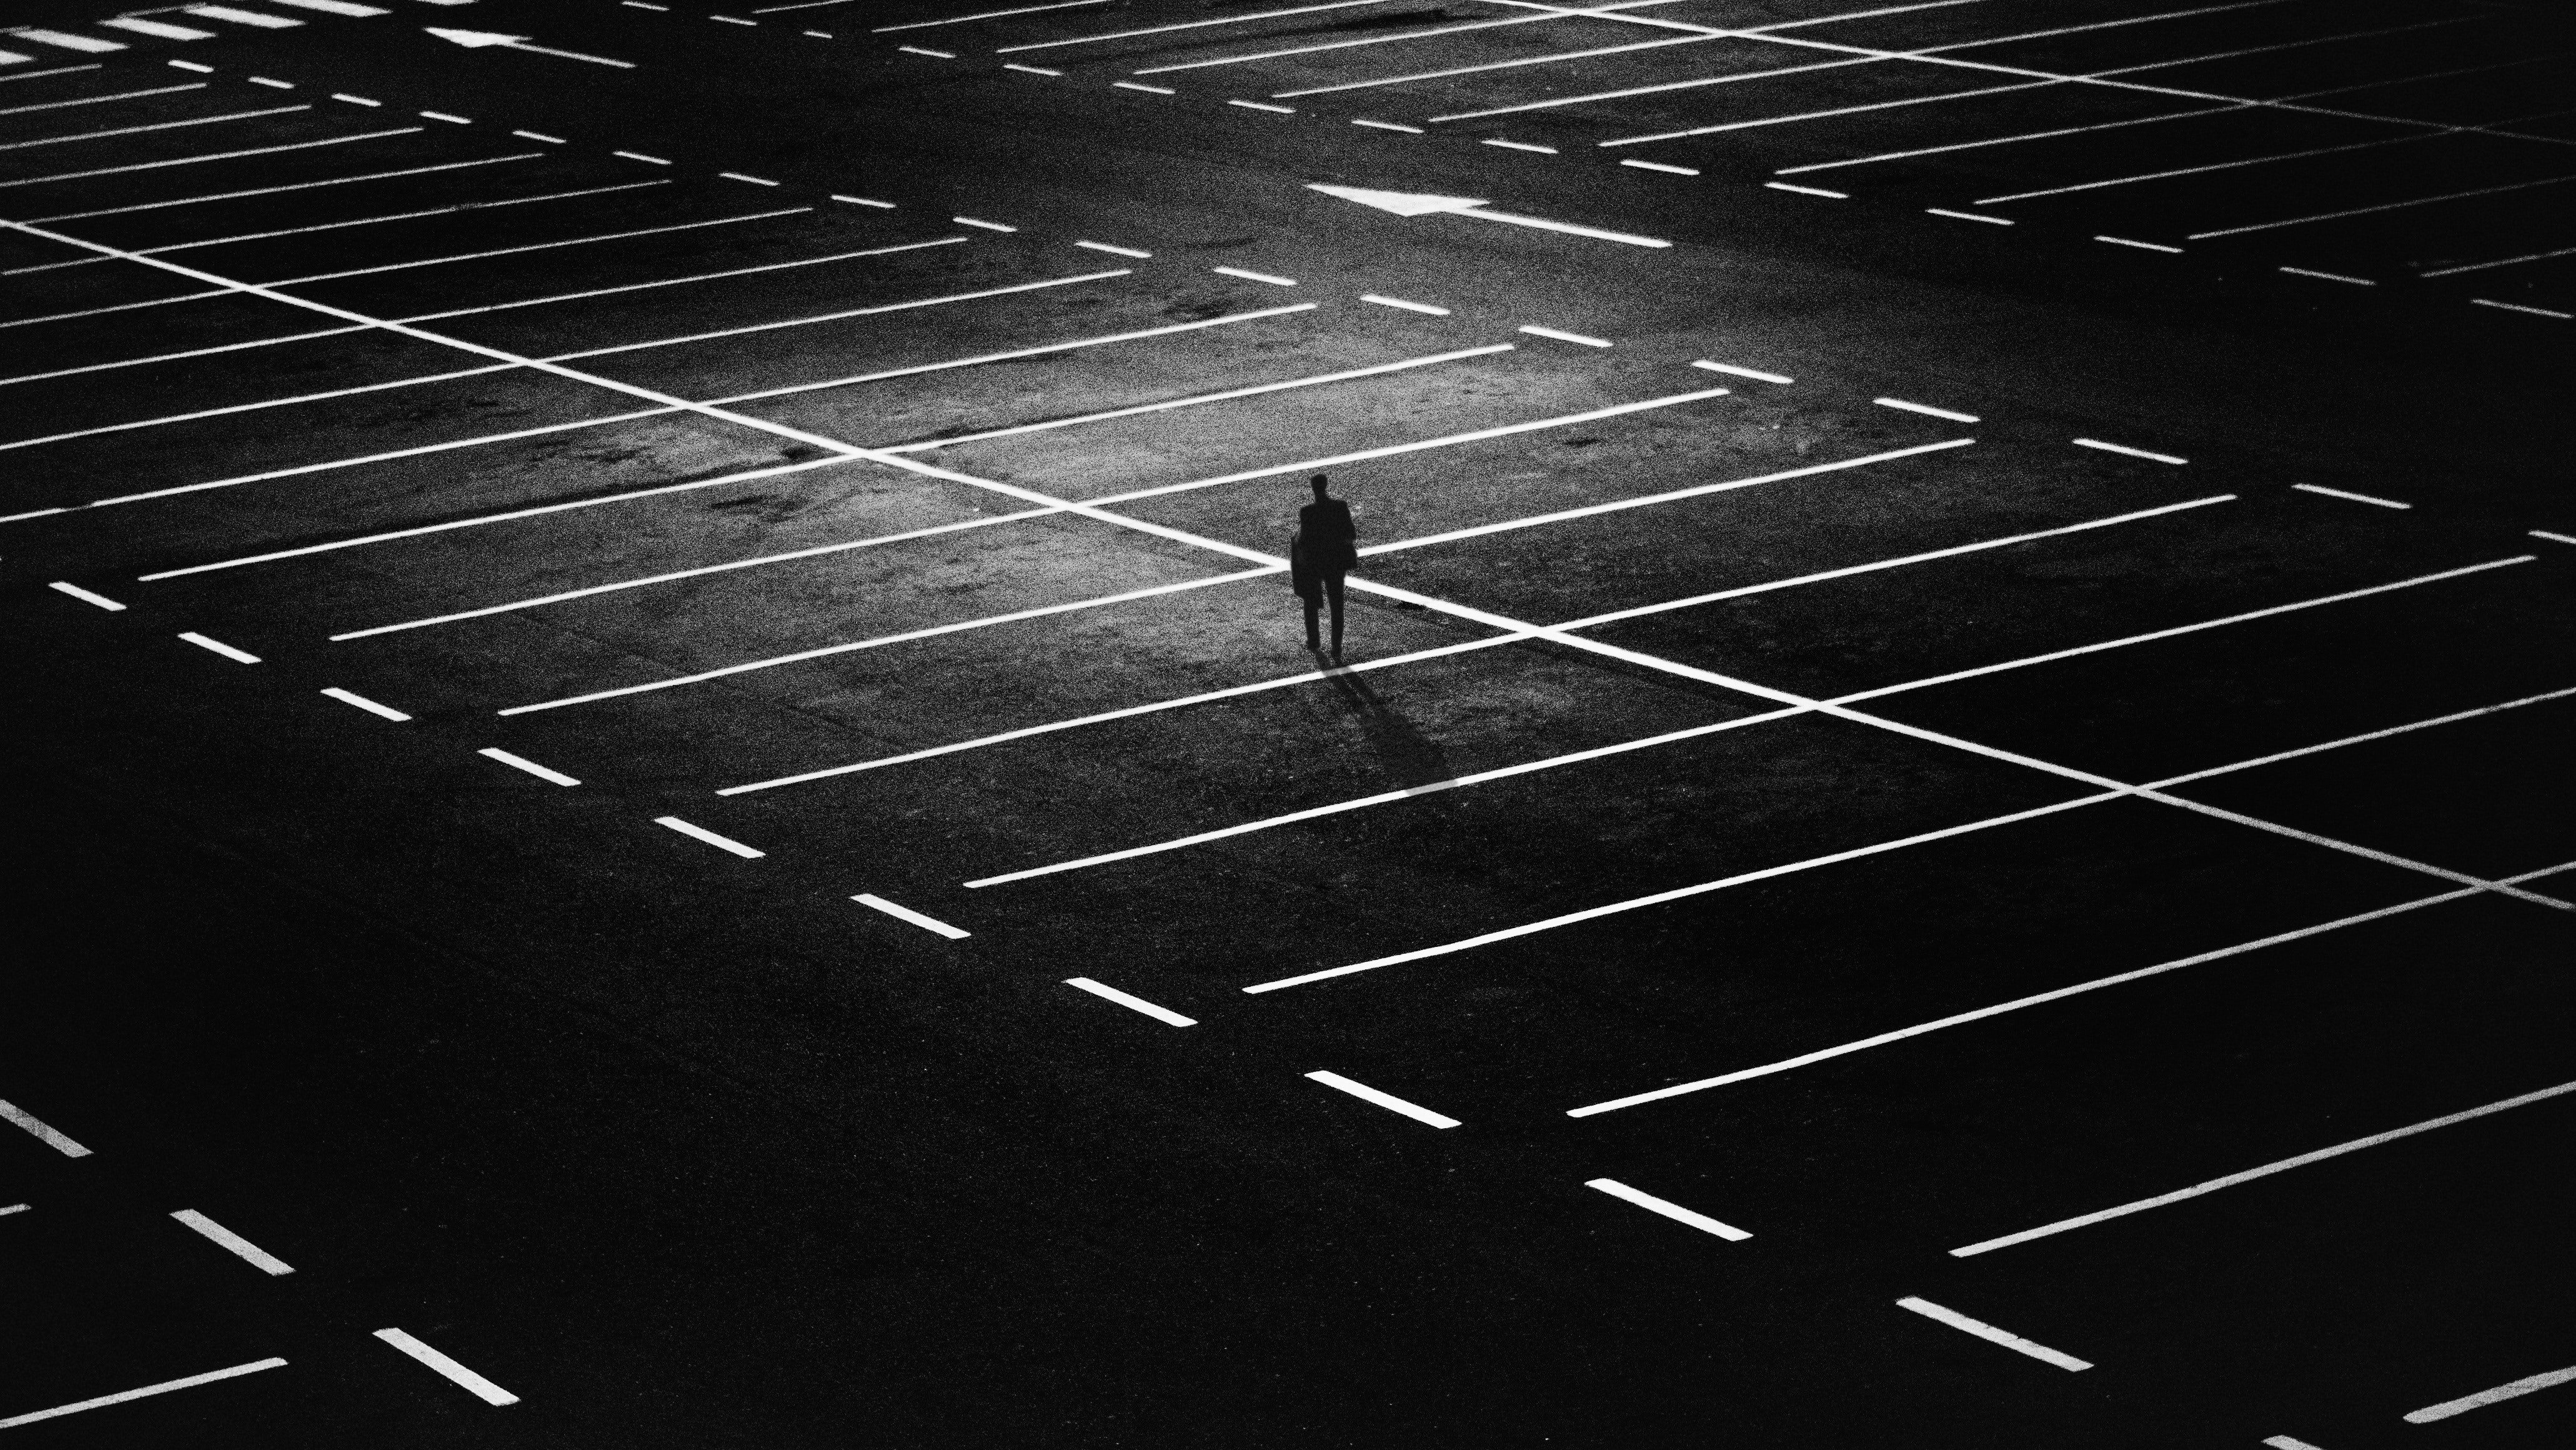 Pictured - A man standing on an empty parking lot   Source: Pexles